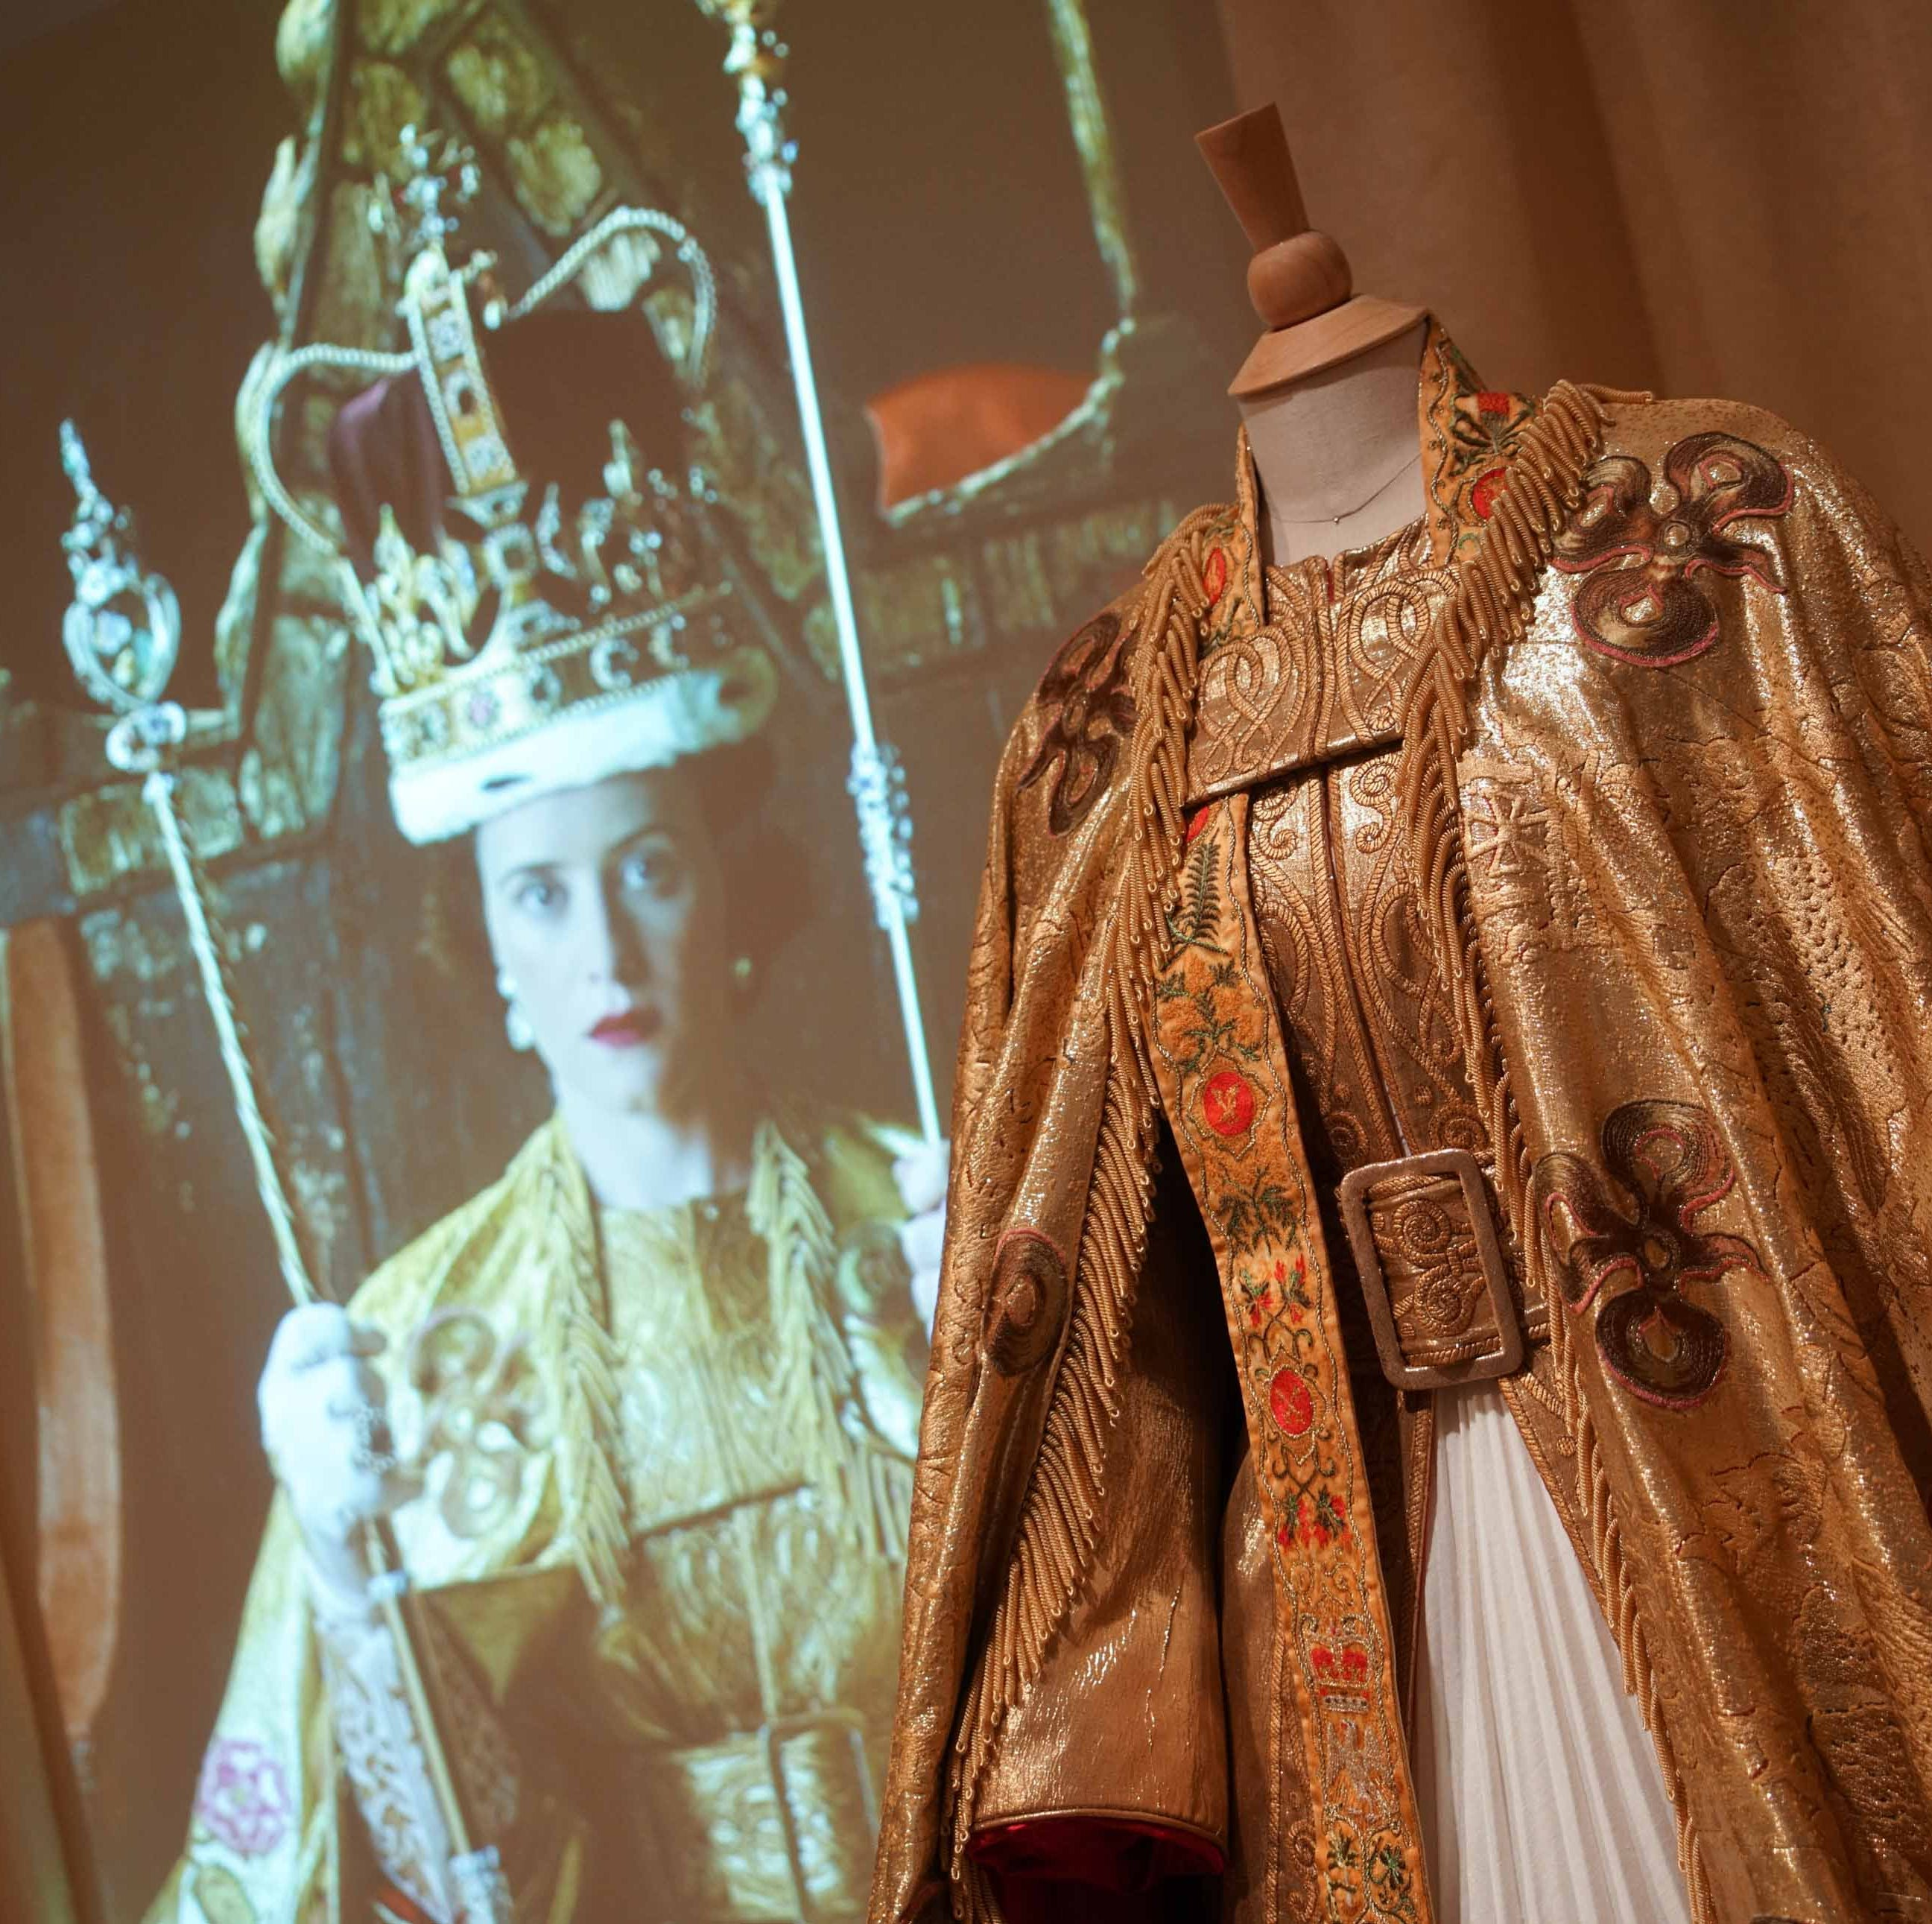 The 9 best pieces and their stories in Delaware's 'Costuming The Crown' exhibit